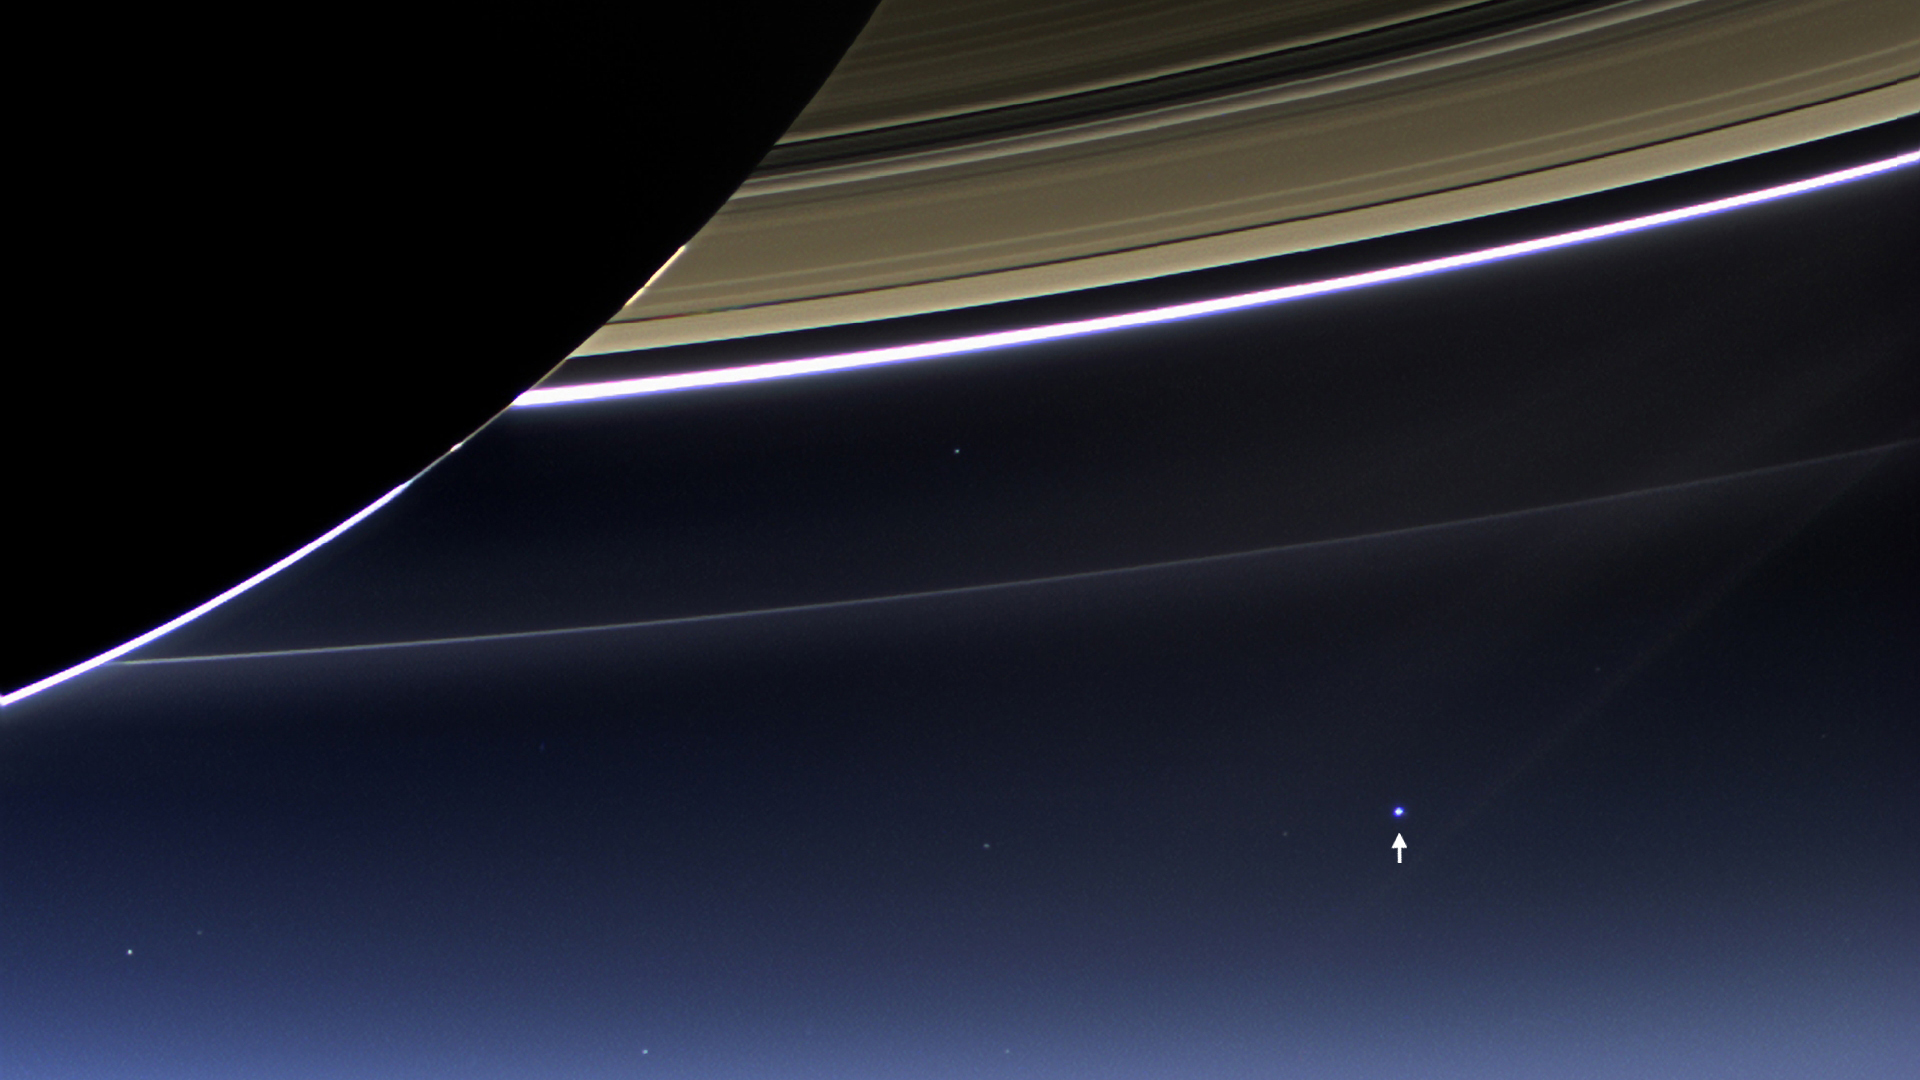 Of planet earth as a point of light between the icy rings of saturn - Saturn S Rings And Our Planet Earth